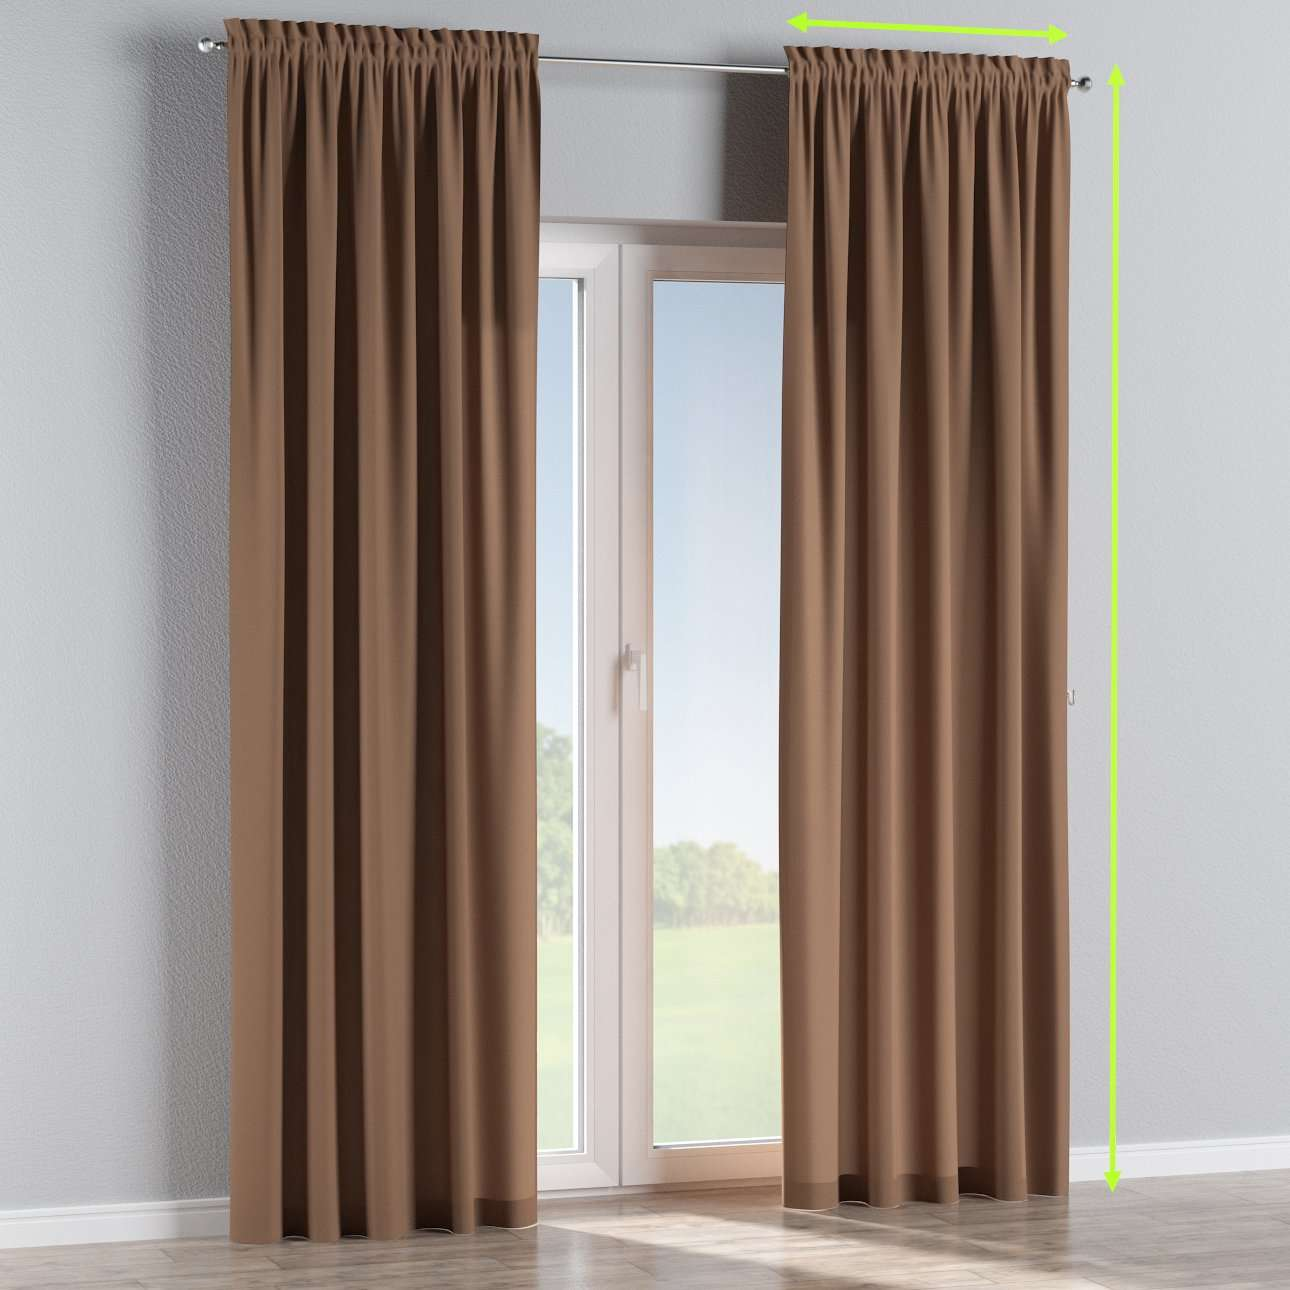 Slot and frill curtains in collection Cotton Panama, fabric: 702-02